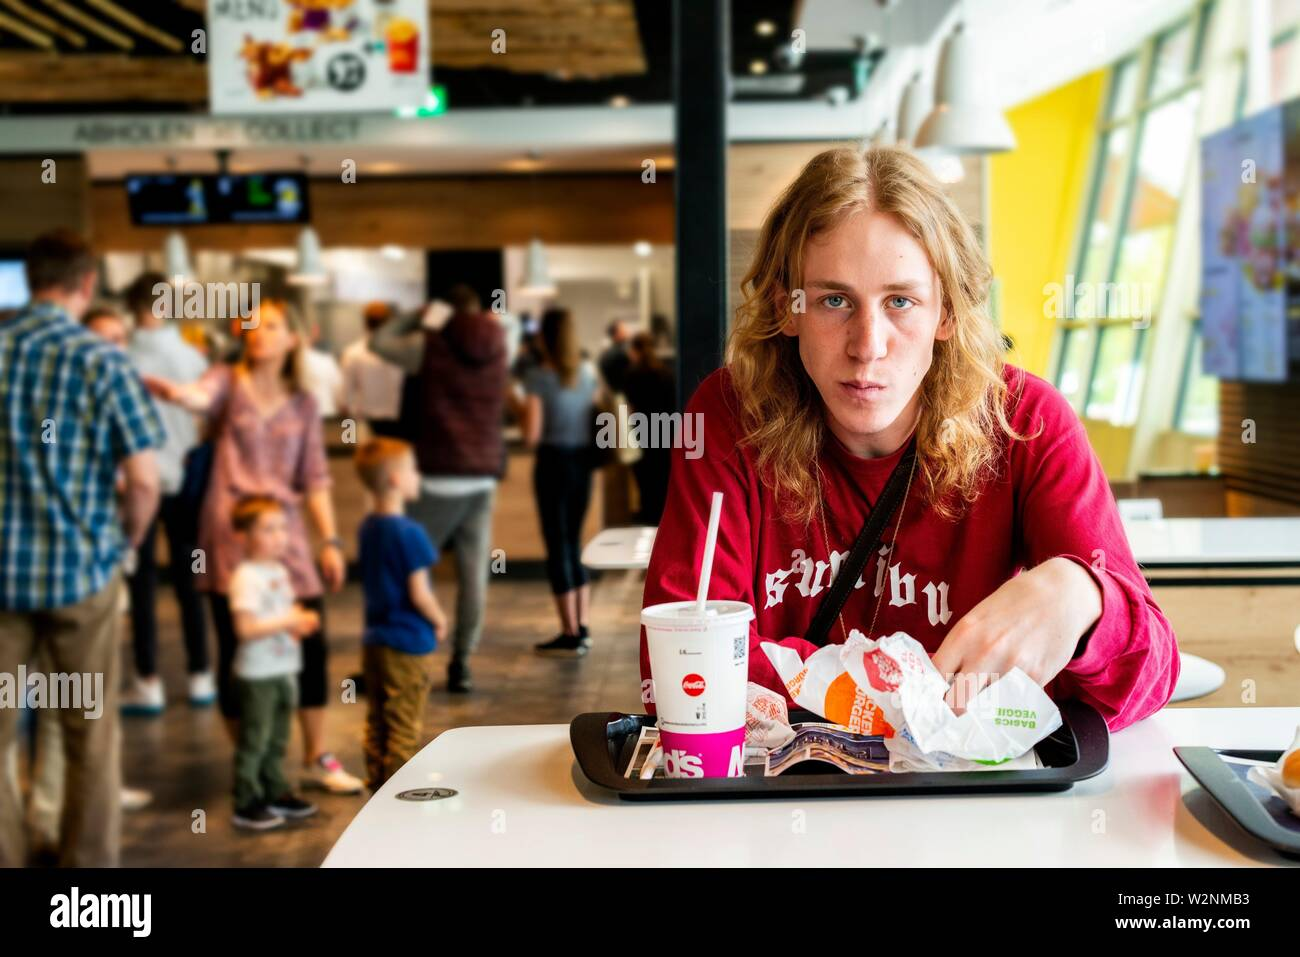 Berlin, Germany. Young adult, male music student eating an unhealthy set of hamburgers at the McDonalds fastfood restaurant during his lunchbreak. - Stock Image